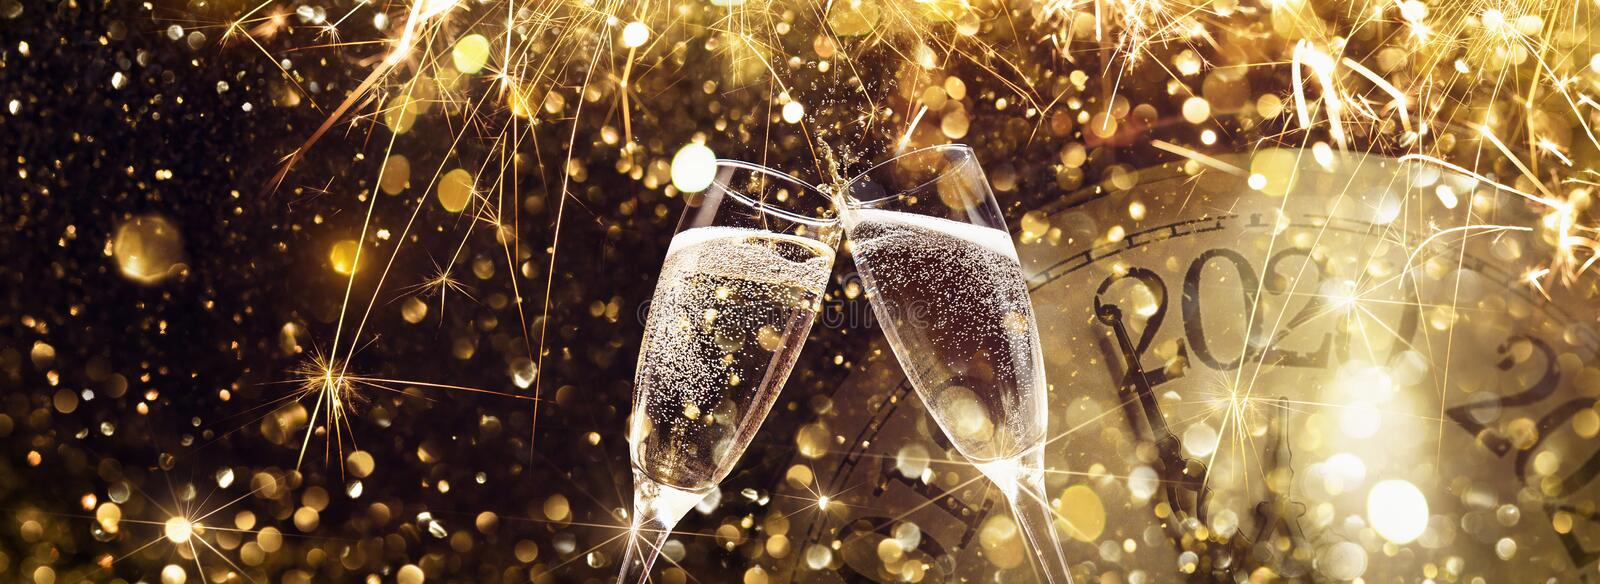 New Year`s Eve 2020 Celebration Background. With Champagne stock images